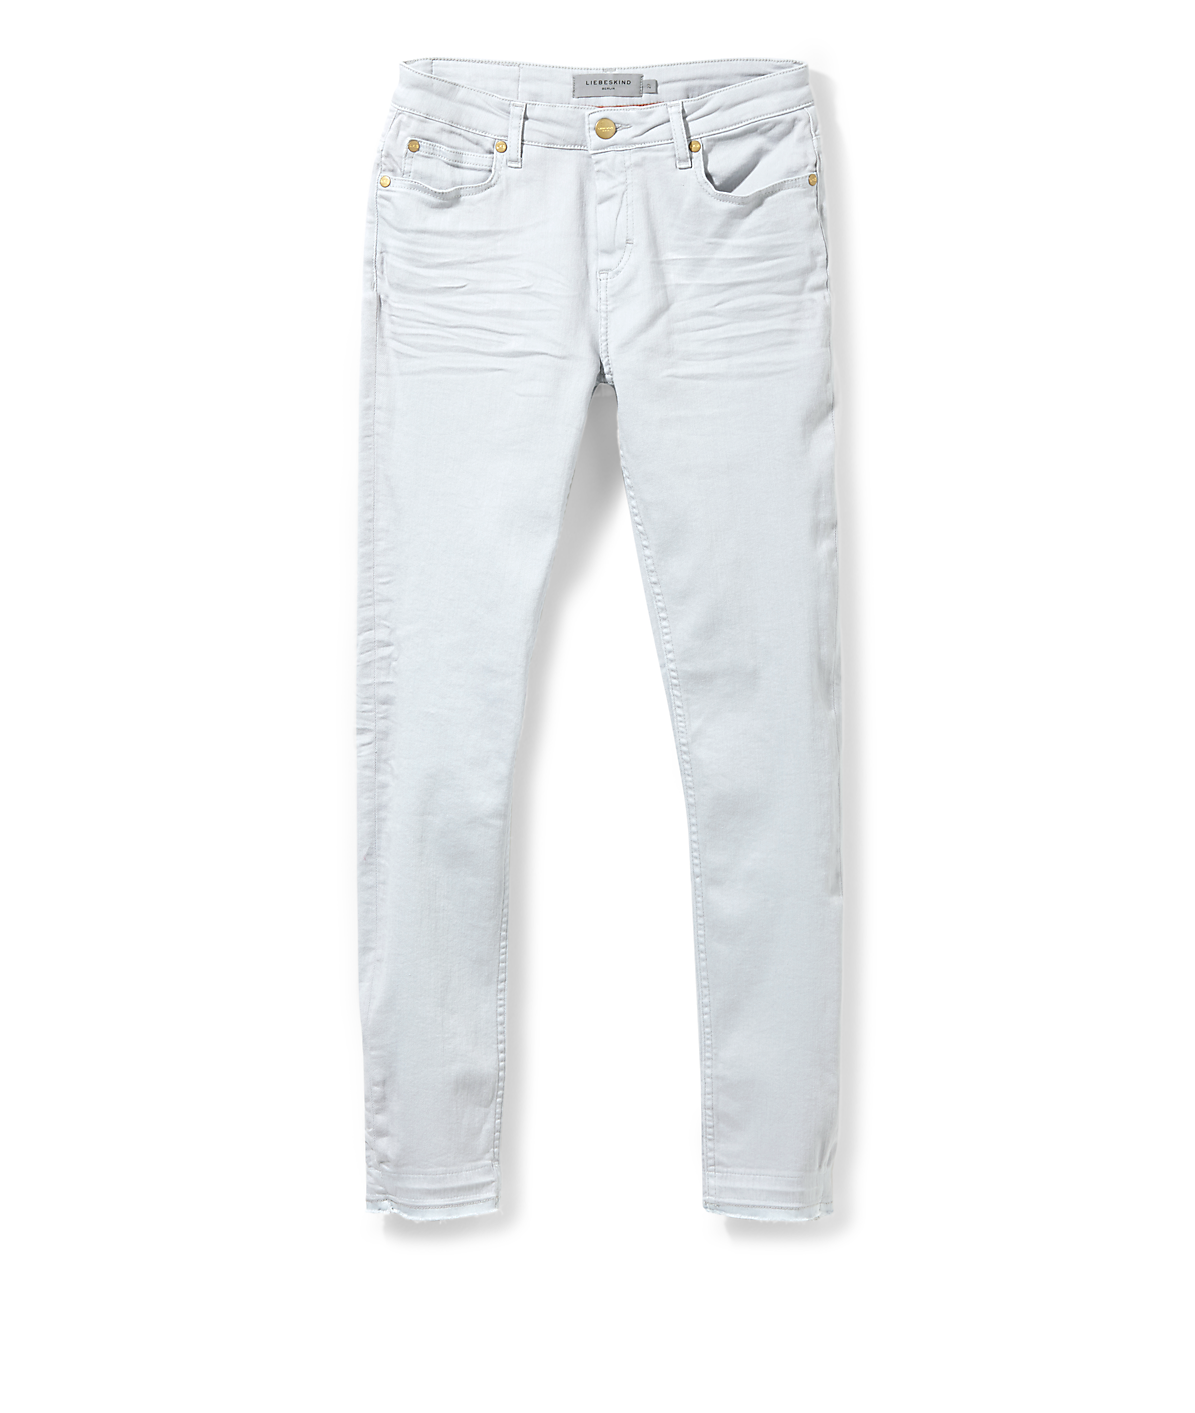 Jeans S1176010 from liebeskind